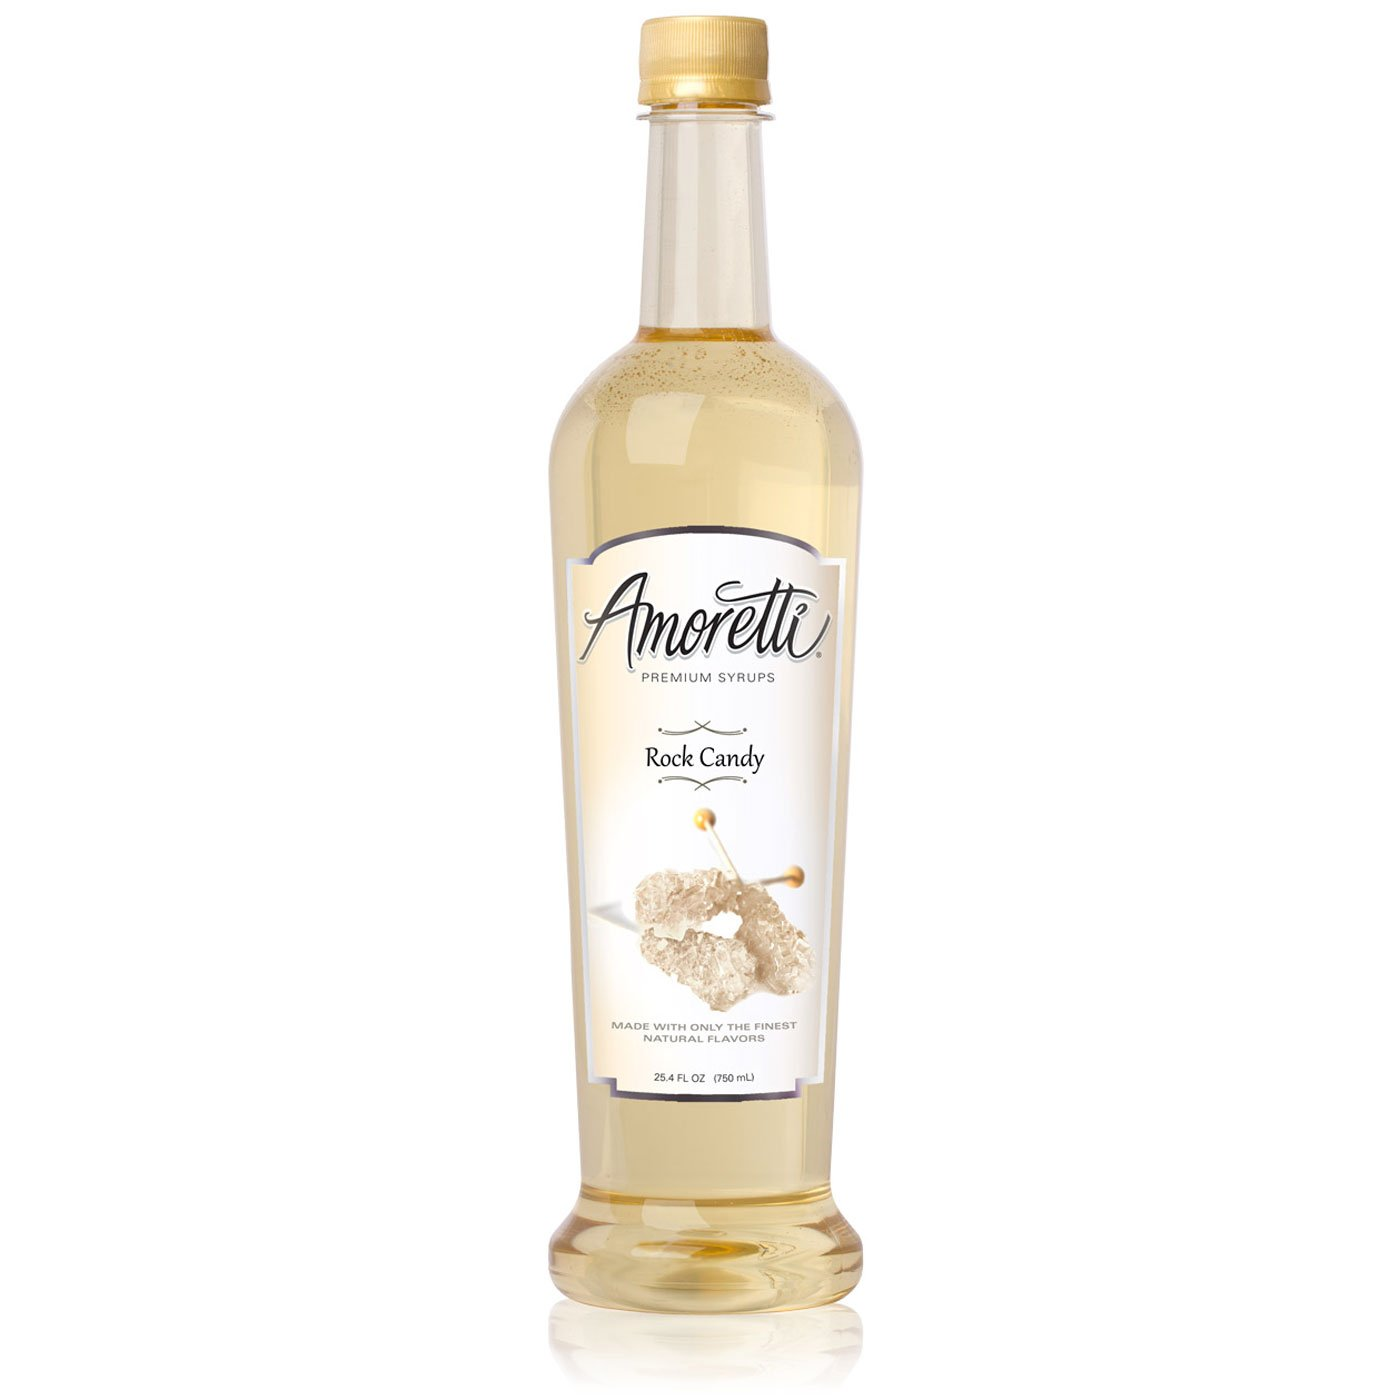 Amoretti Premium Syrup, Rock Candy, 25.4 Ounce